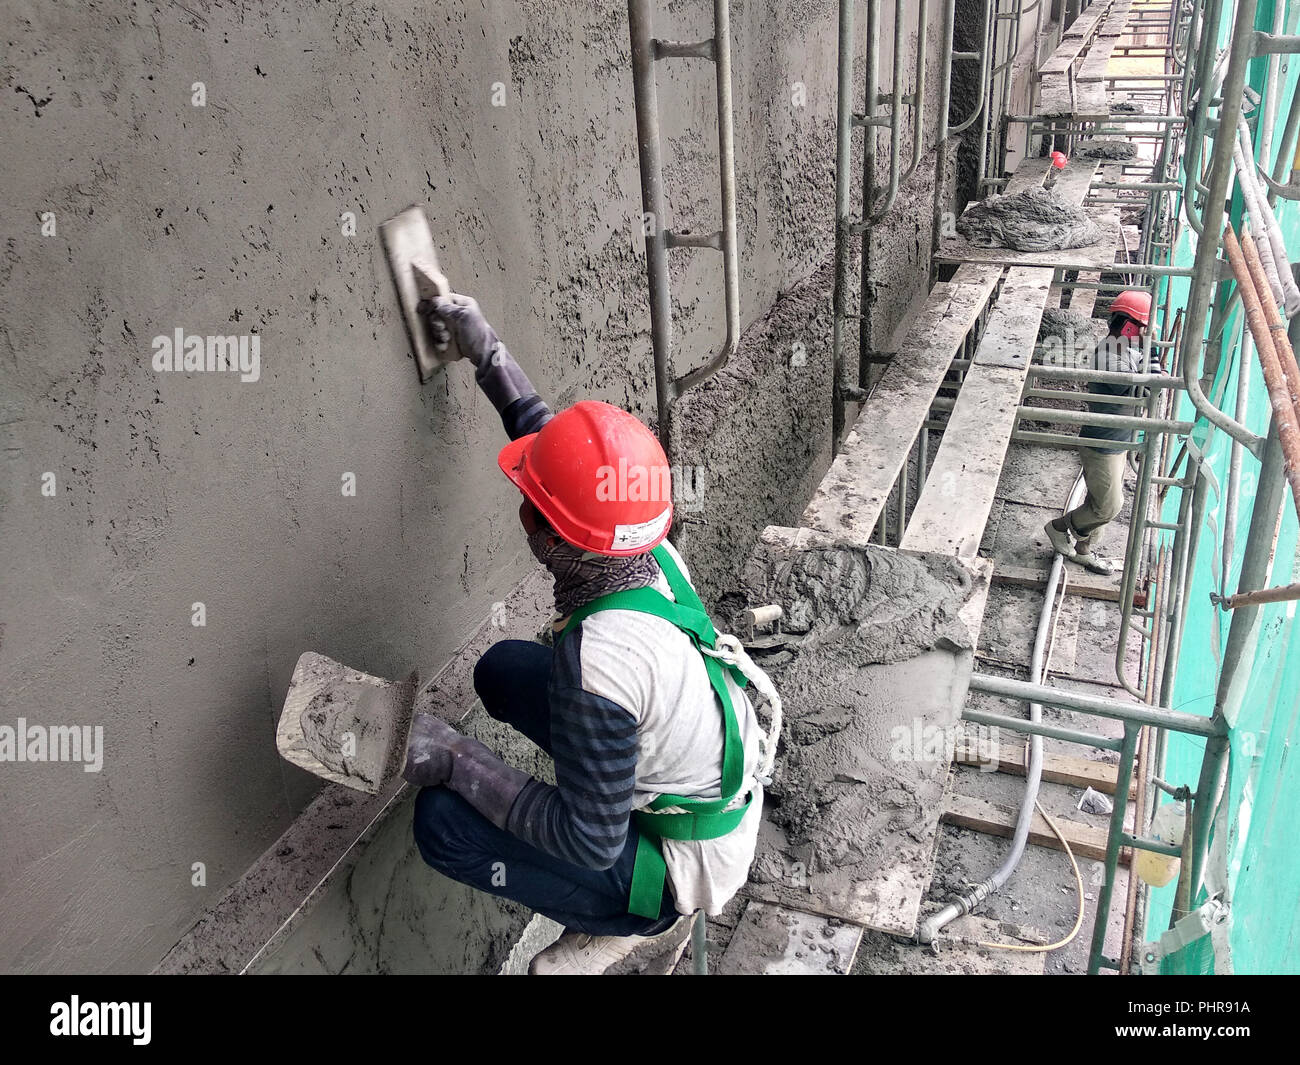 Construction workers plastering wall using cement plaster at the construction site. They are wearing appropriate safety gear to prevent bad happen. - Stock Image